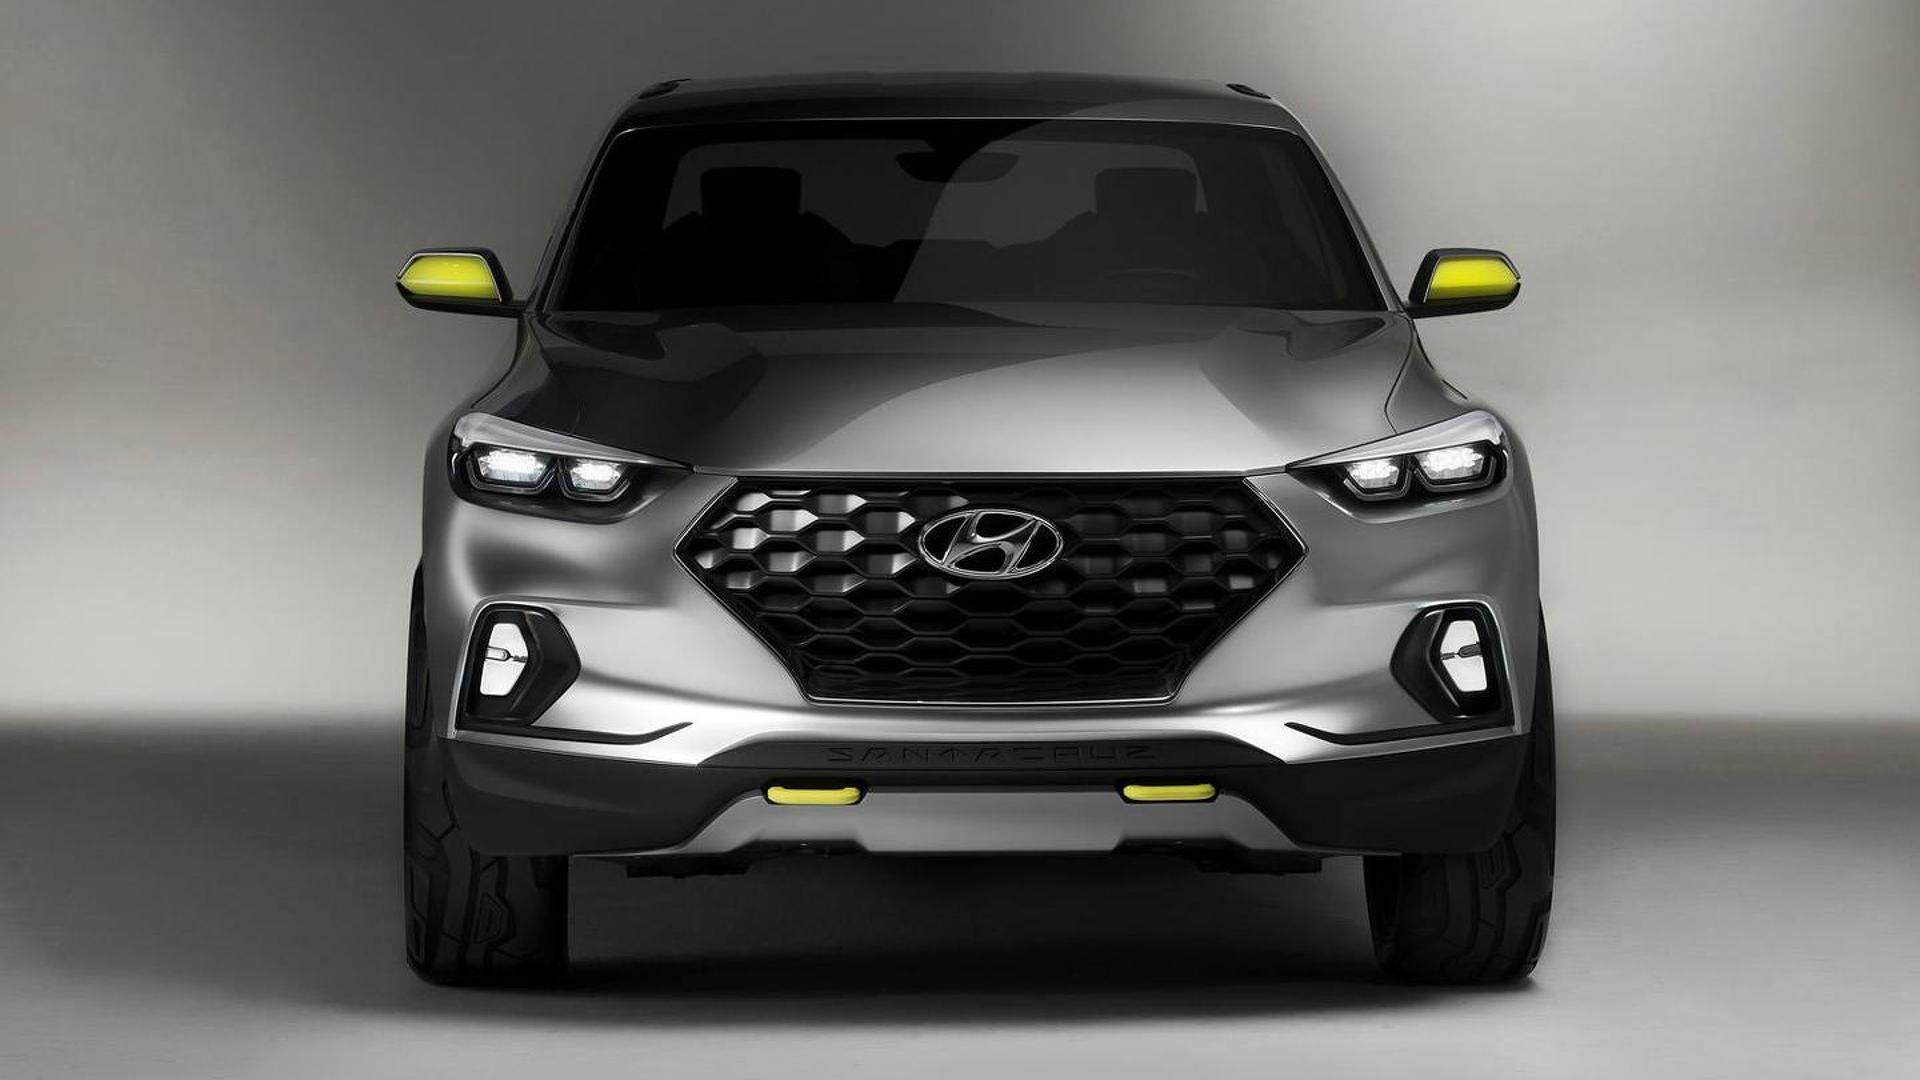 Hyundai pickup gaining traction but not before 2020